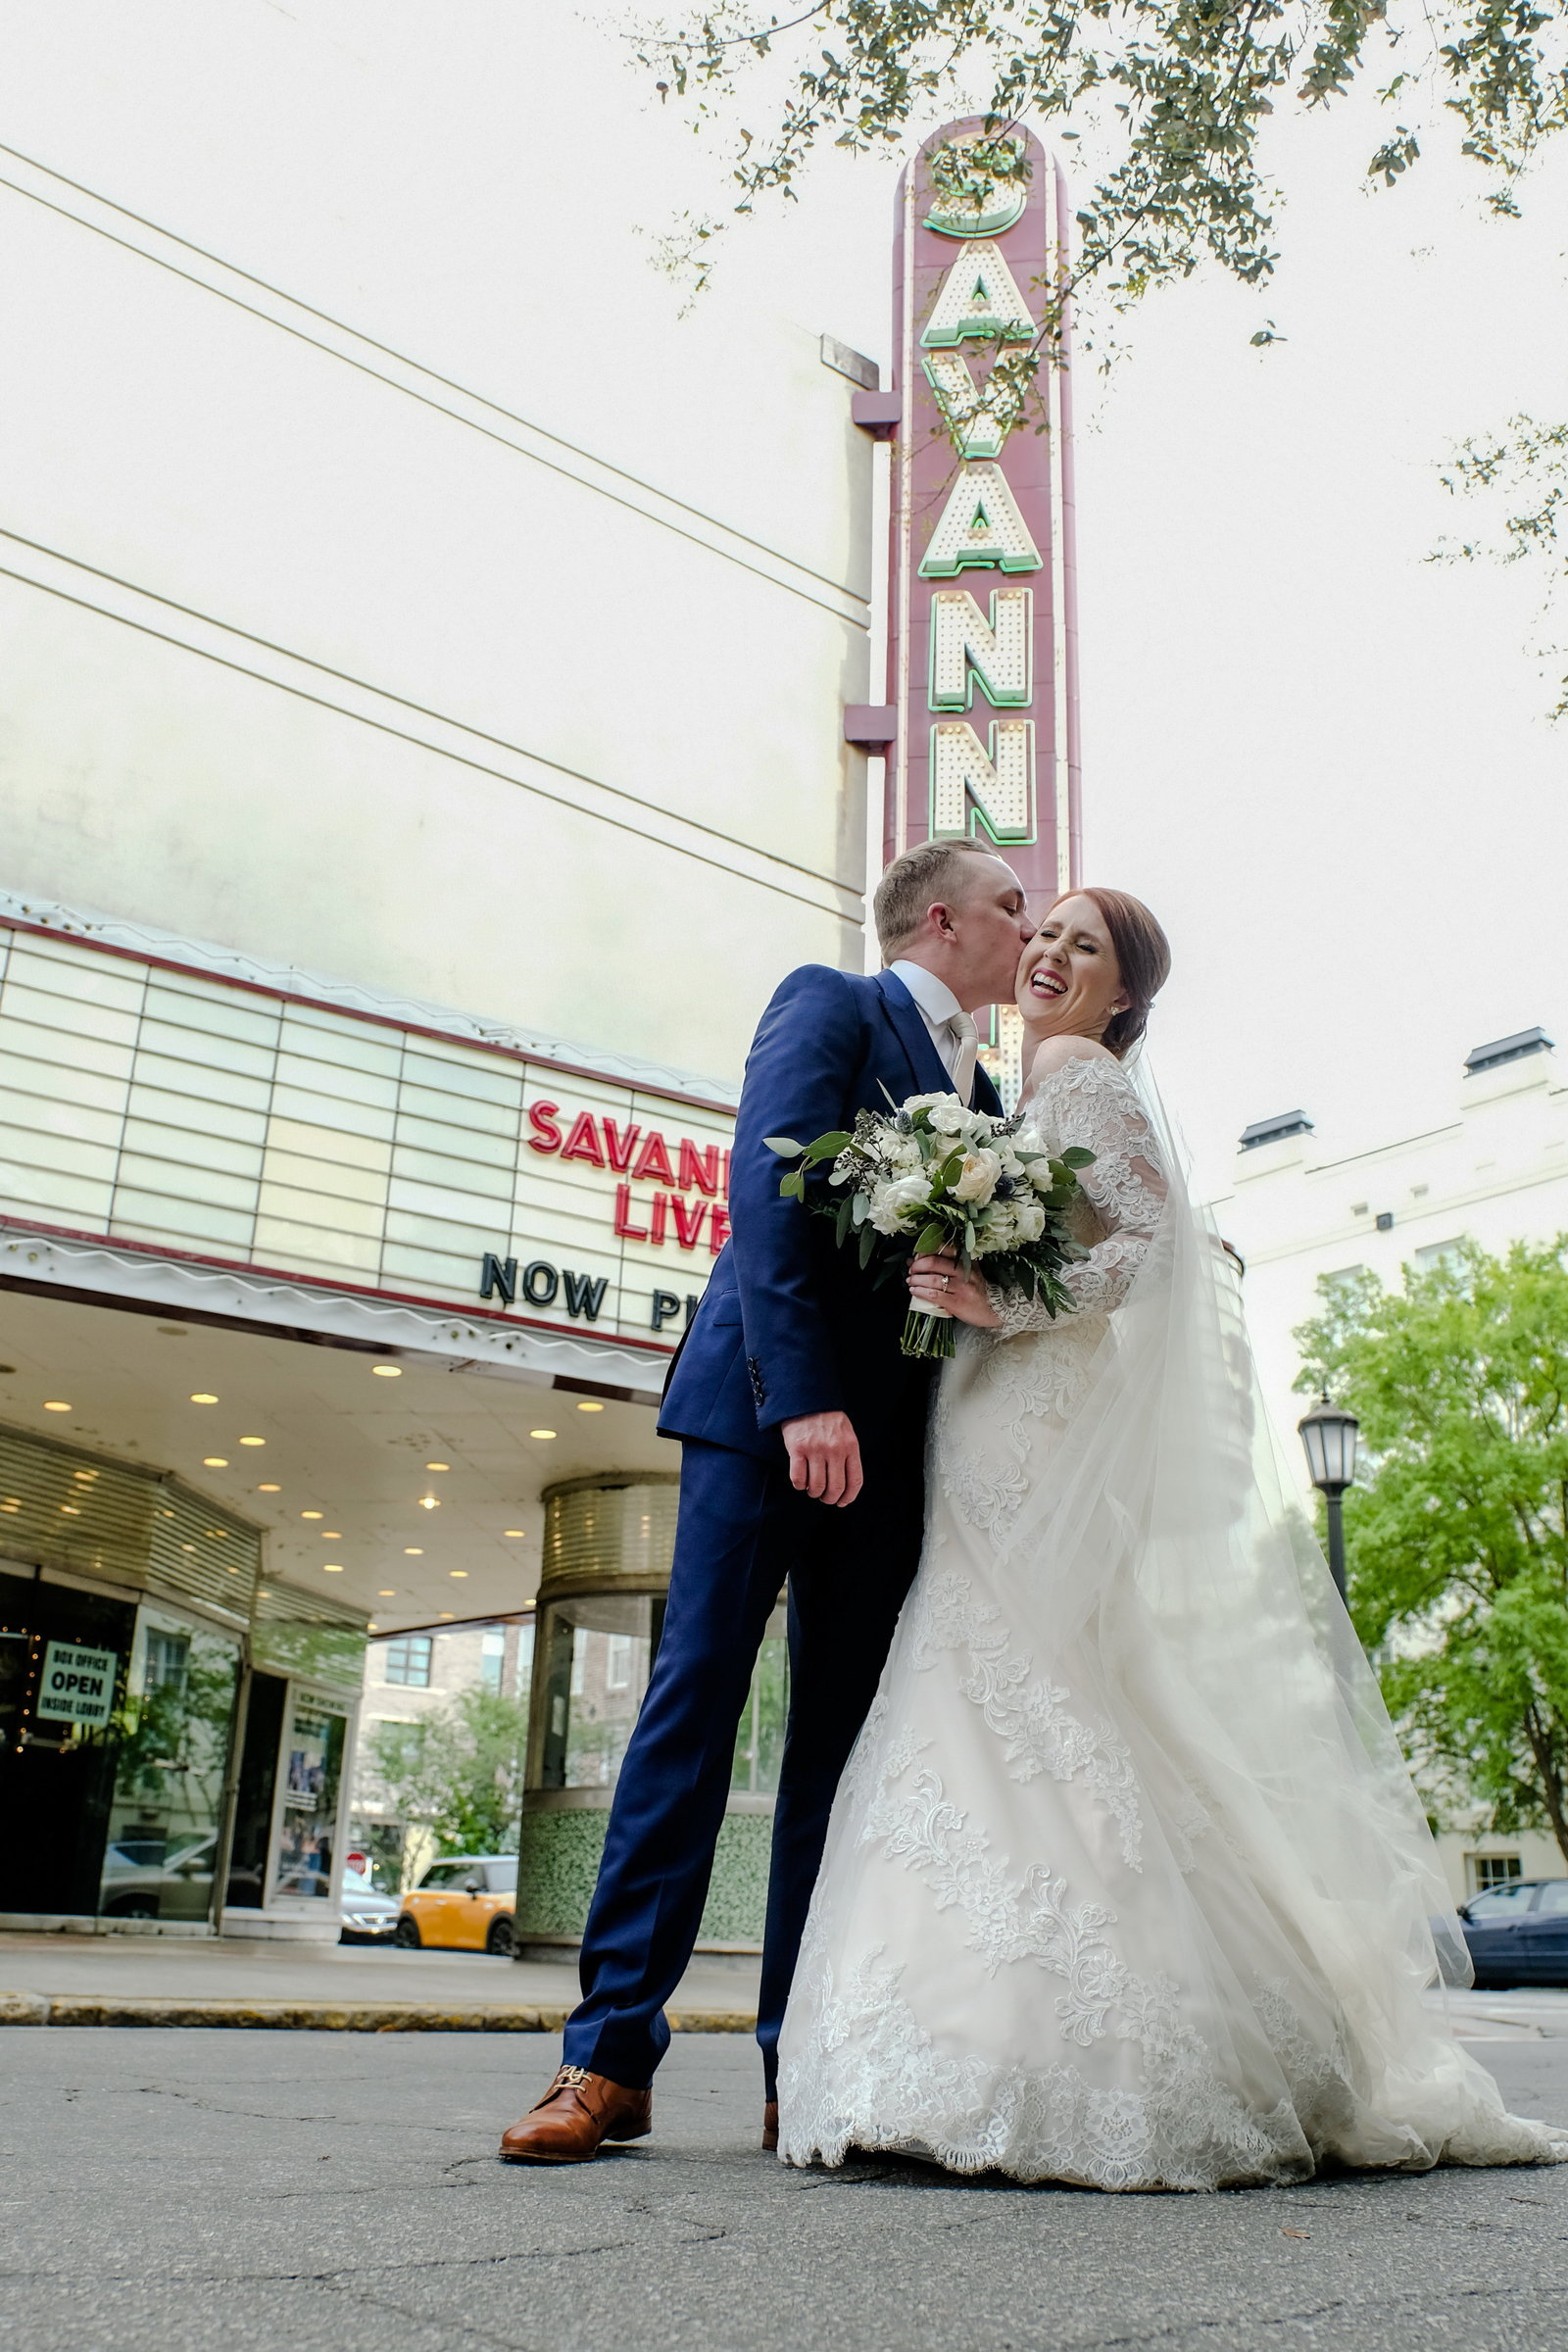 Savannah Georgia Wedding Photographer, Bobbi Brinkman Photography